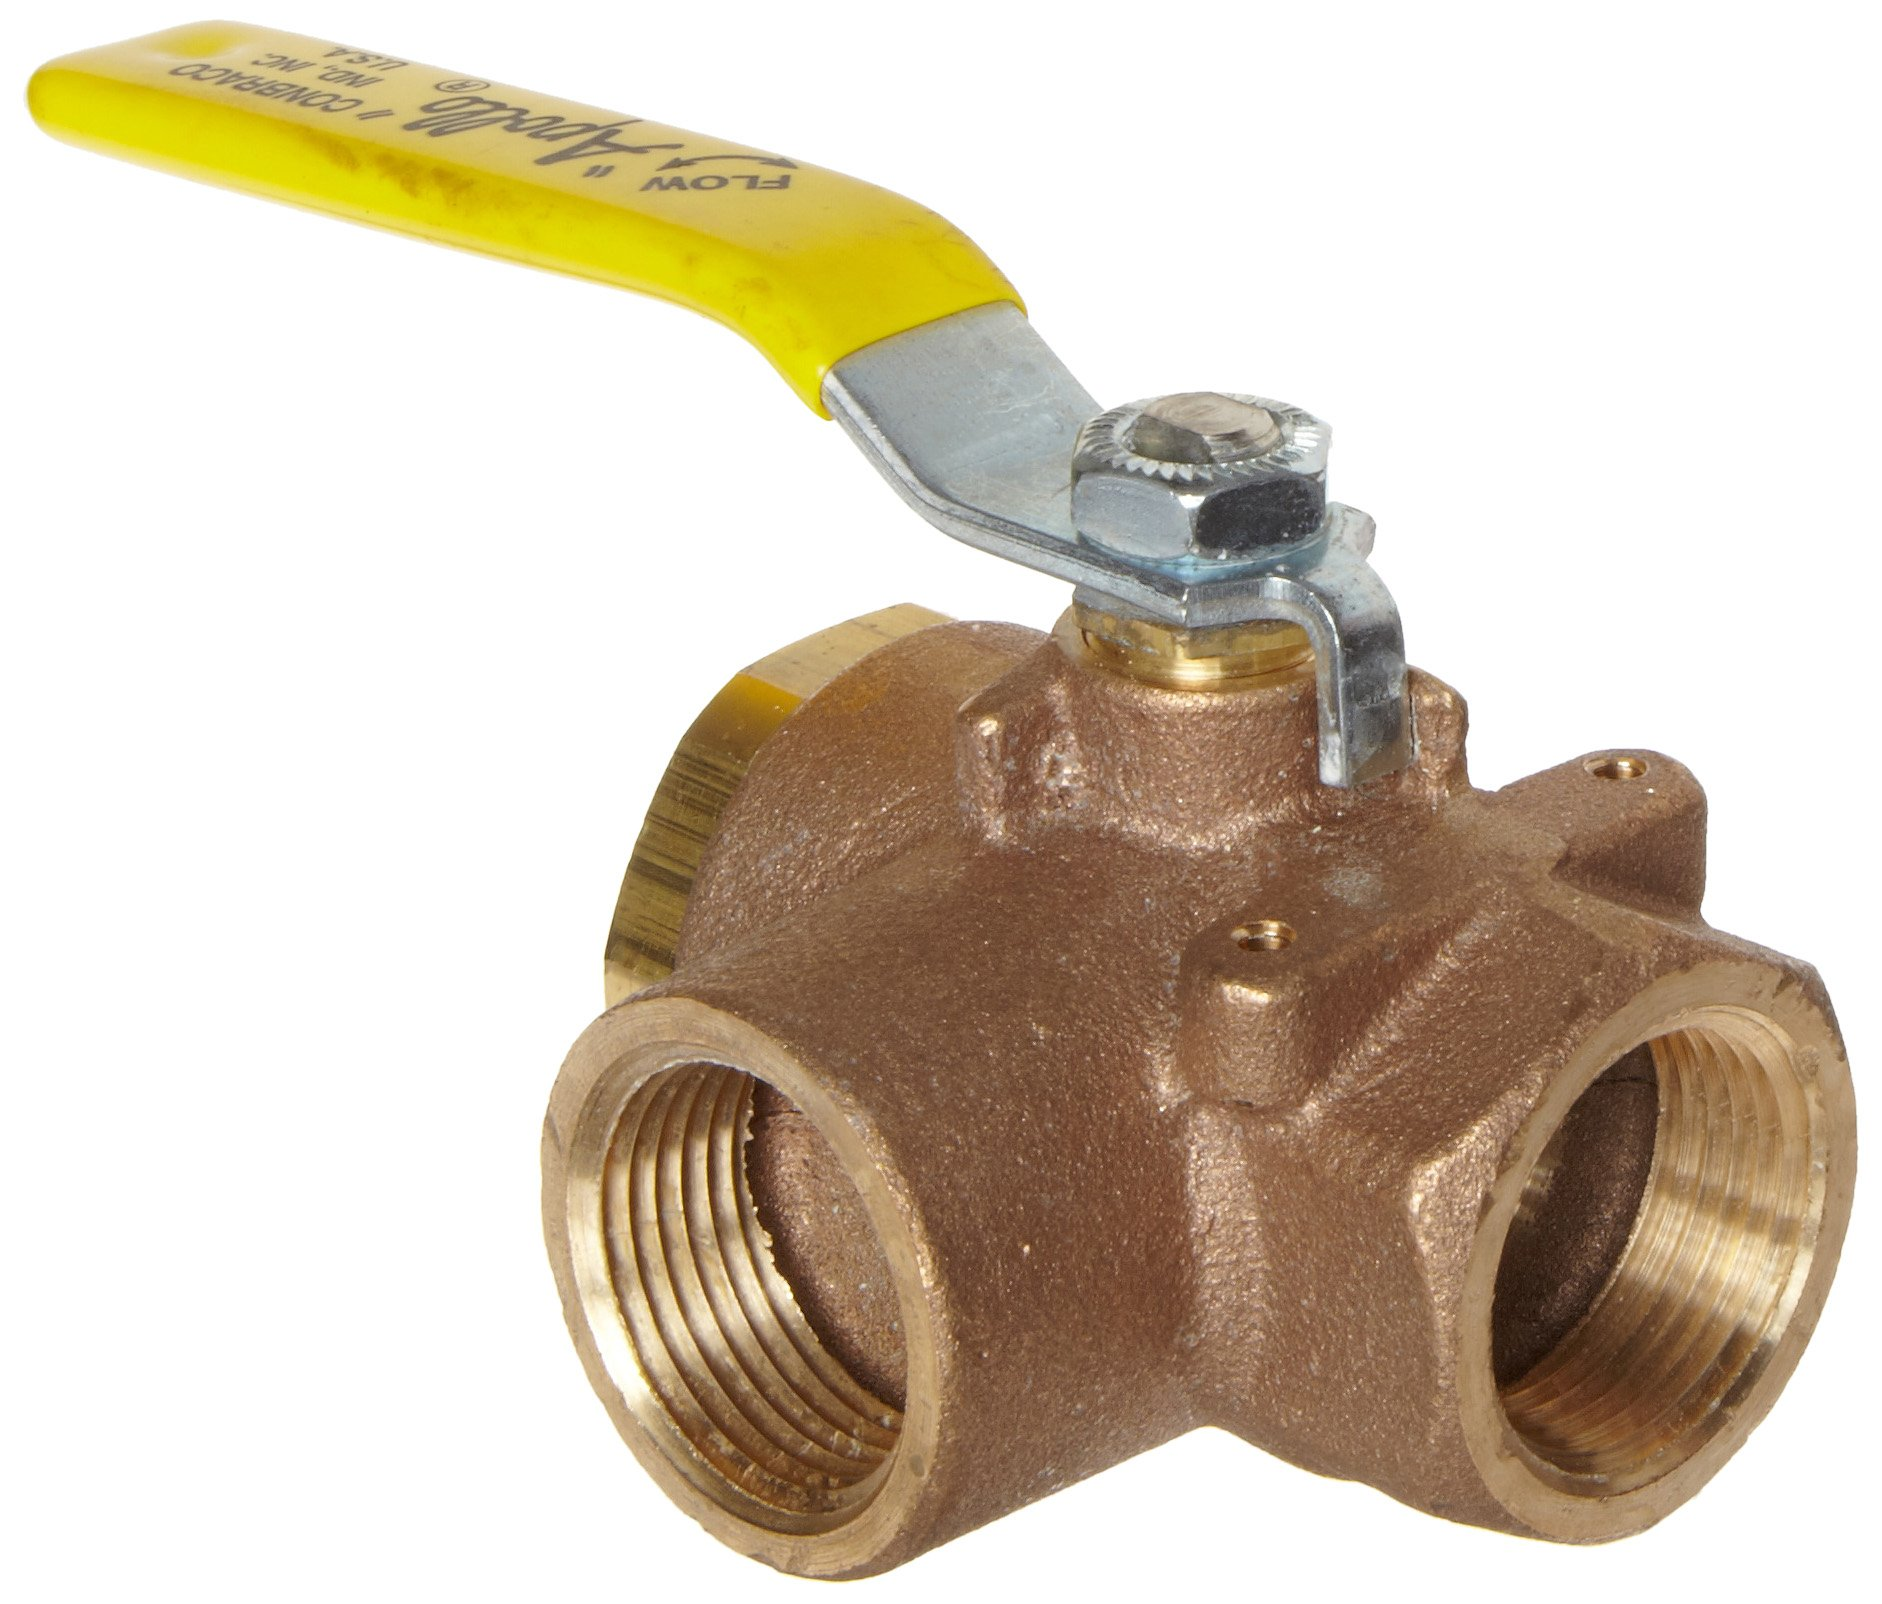 Apollo 70-640 Series Bronze Ball Valve with Stainless Steel 316 Ball and Stem, Two Piece, 3-Port Diverting, Lever, 1-1/4'' NPT Female